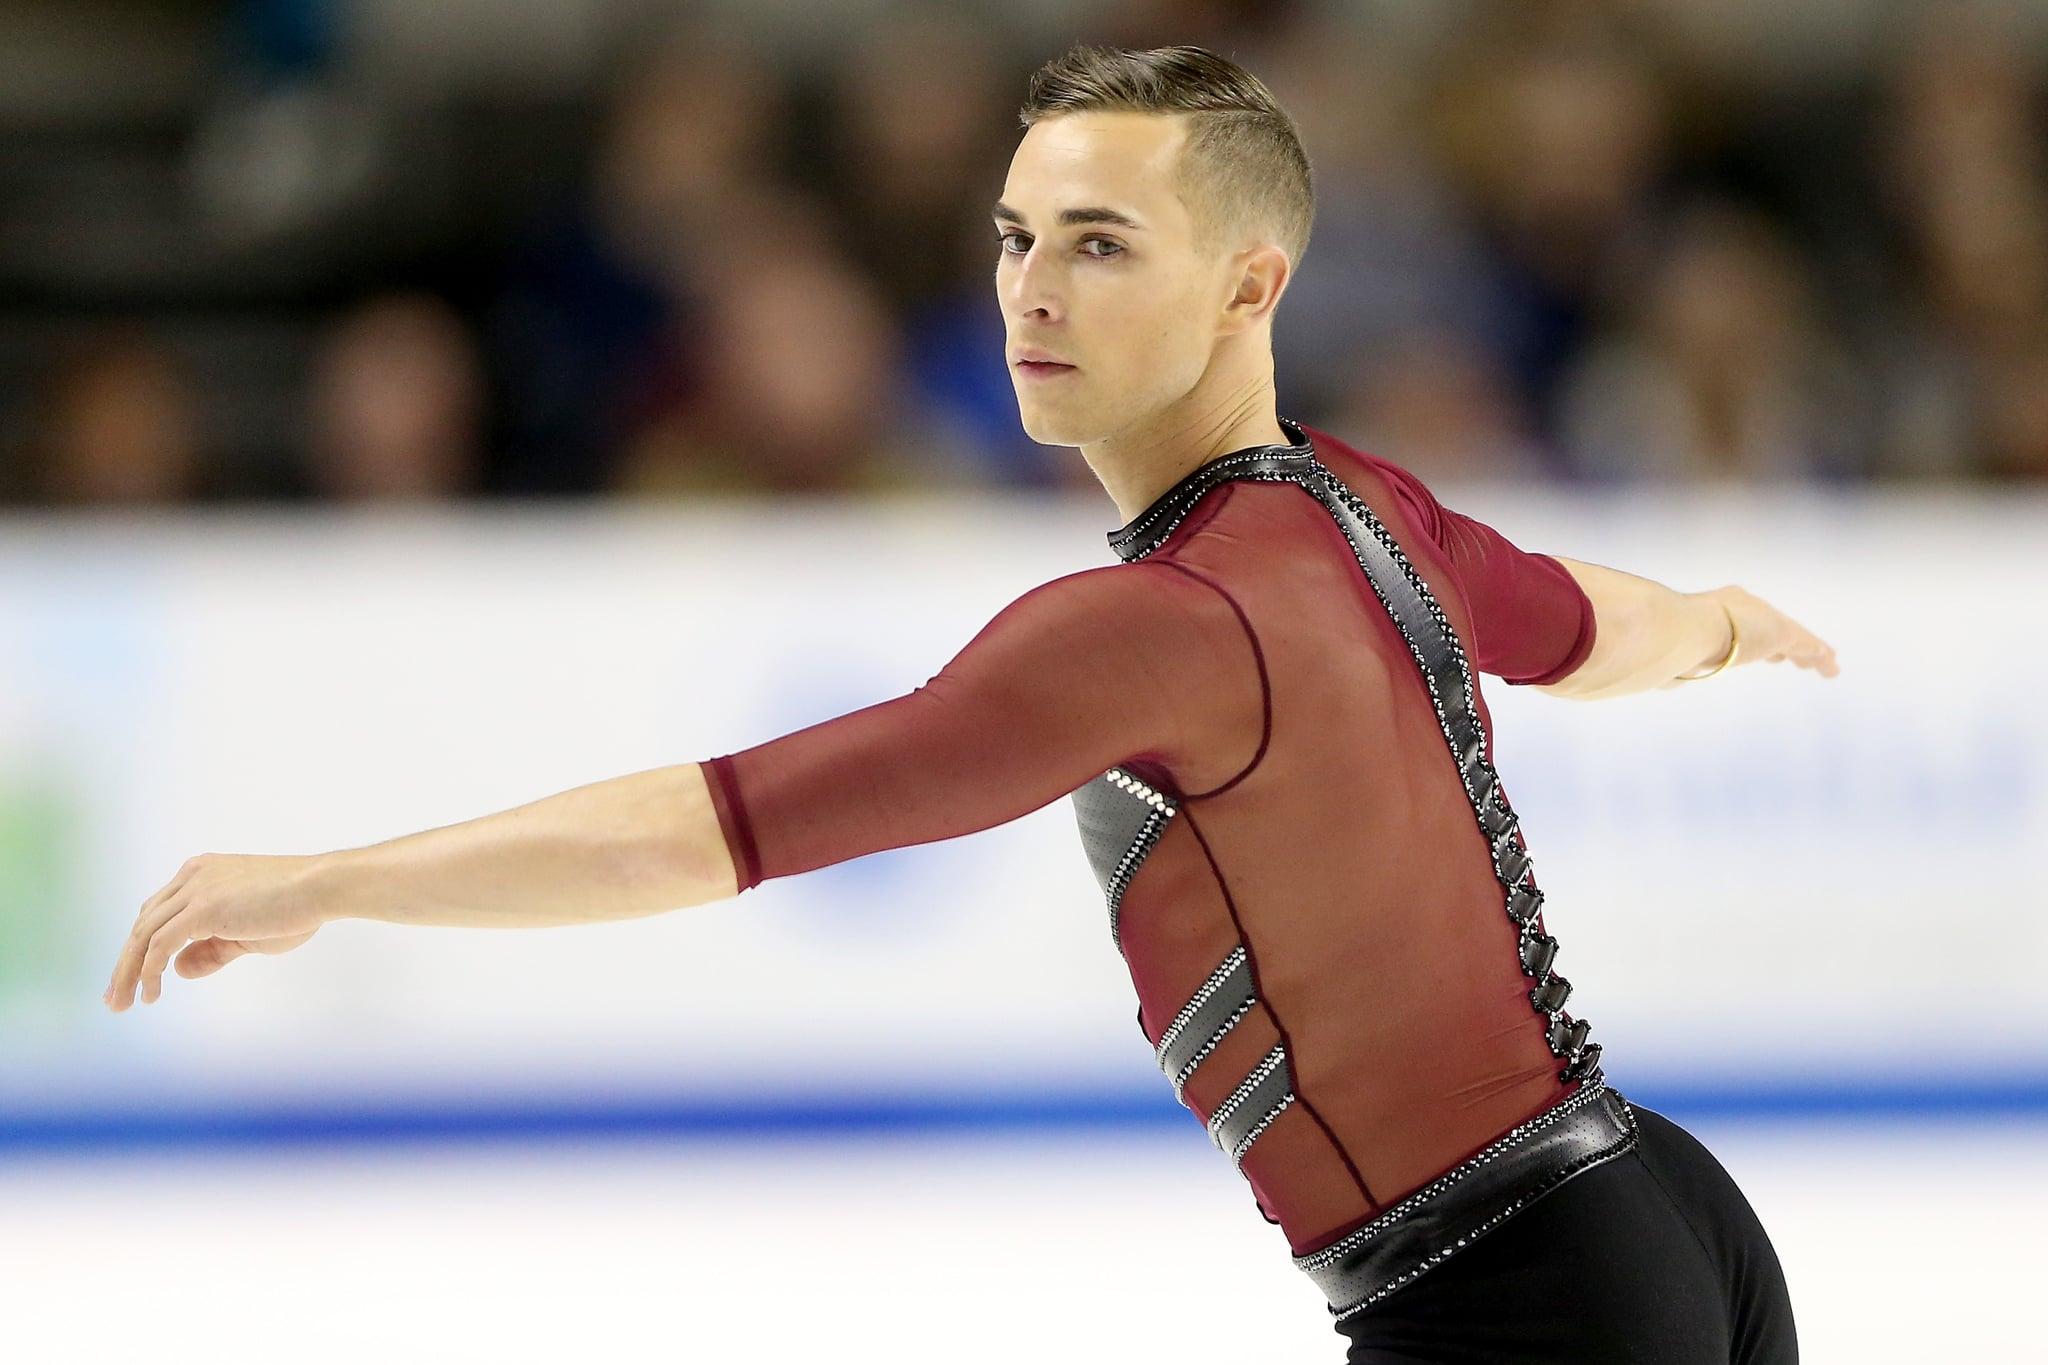 Out Figure Skater Adam Rippon Chosen to Compete in Winter Olympics